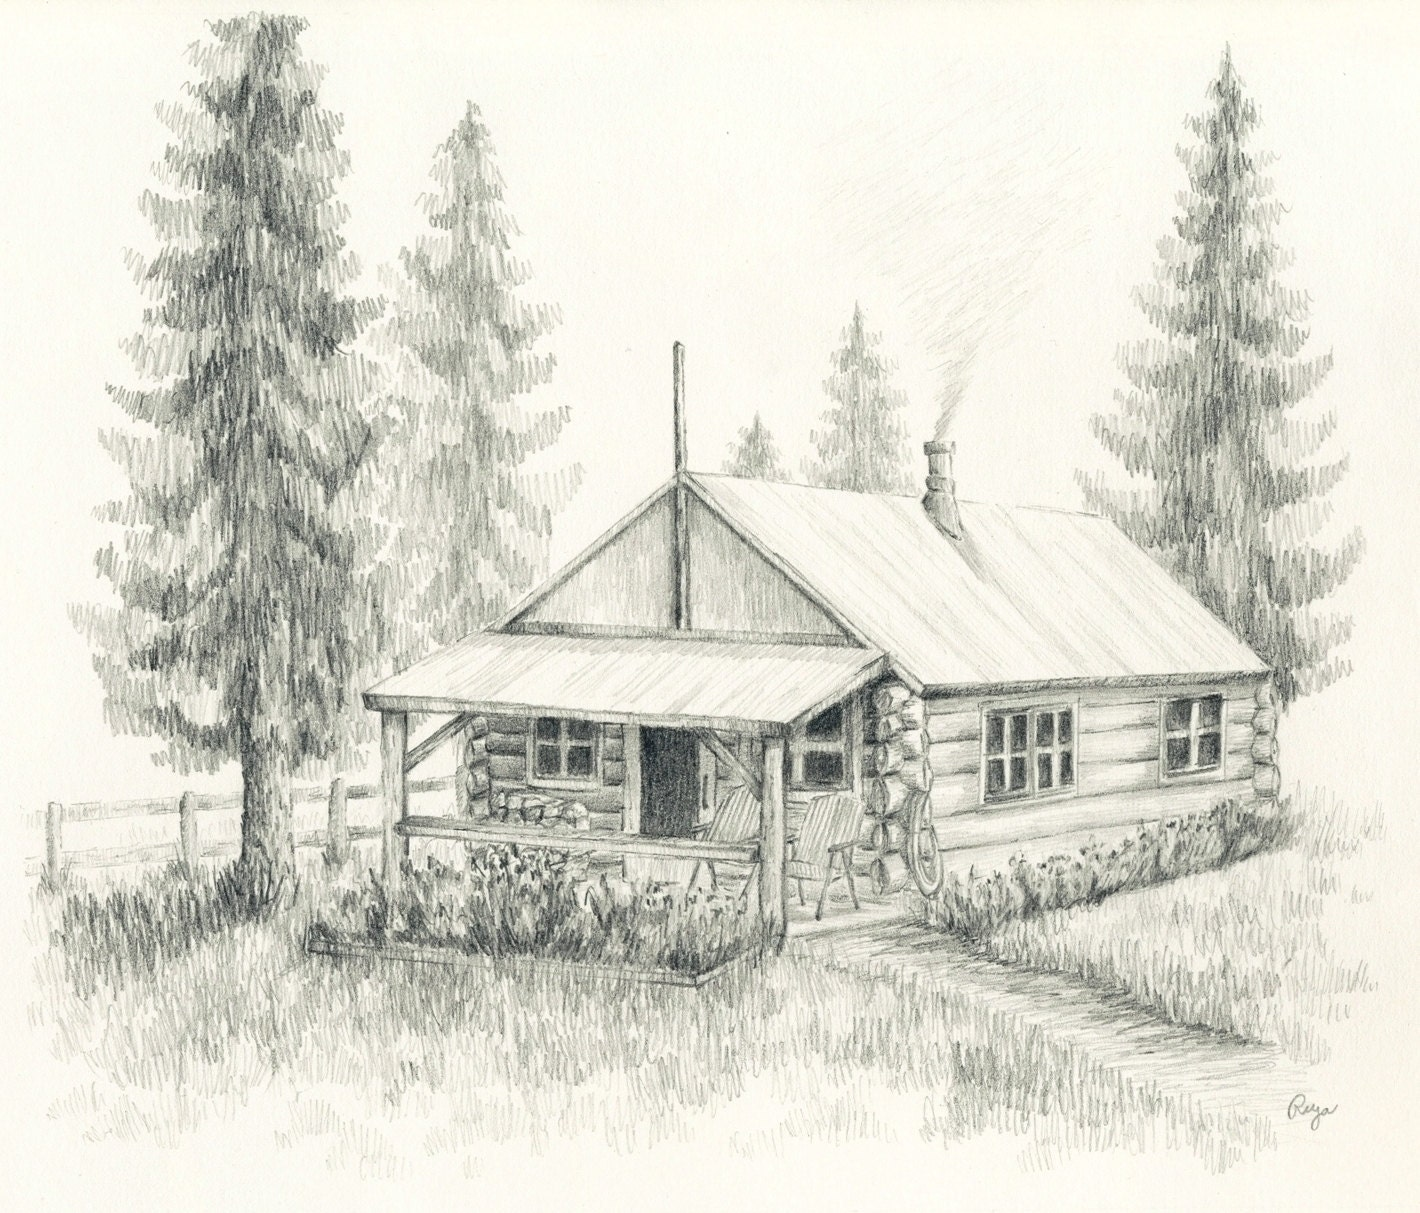 Pencil drawings of small log cabins joy studio design for How to draw a log cabin step by step